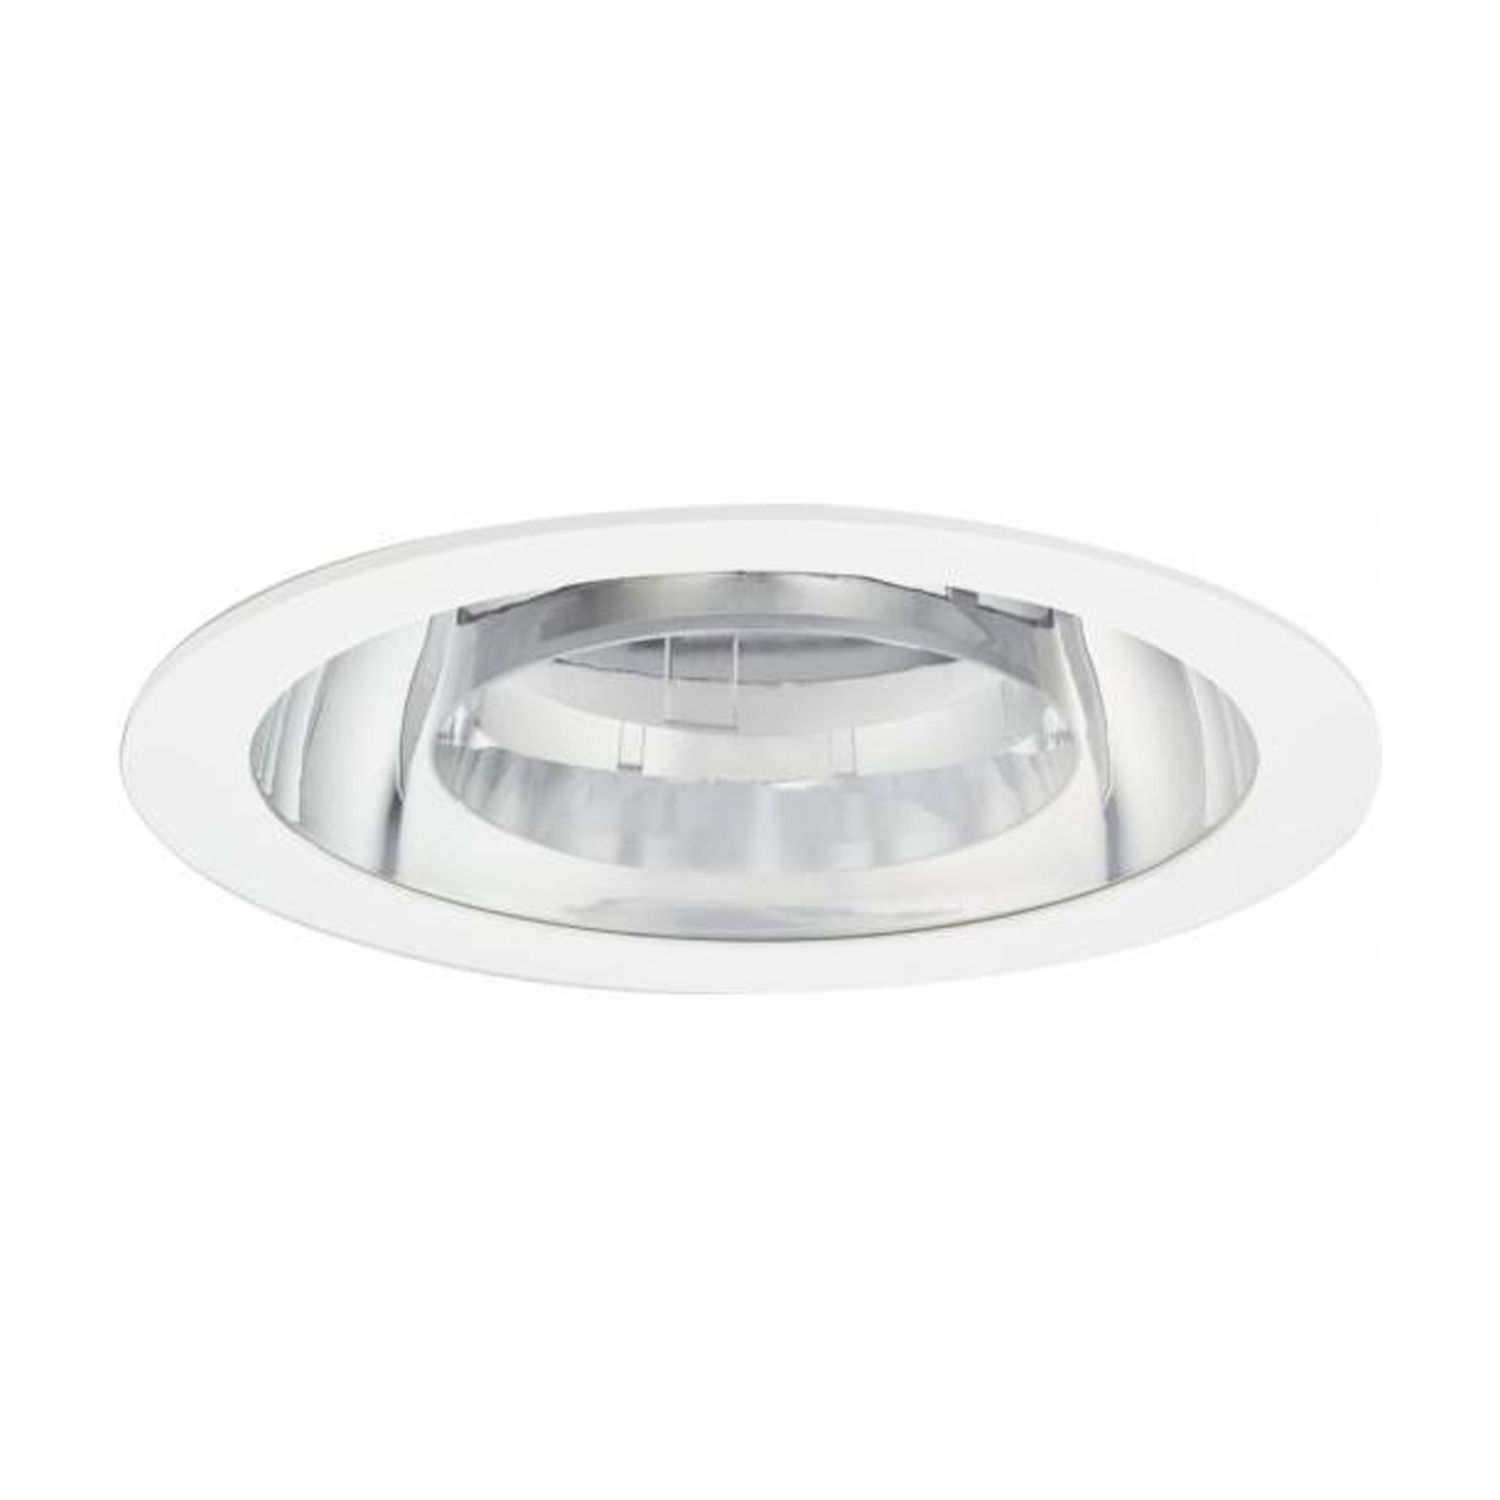 Philips GreenSpace2 DN471B 3000K 2000lm LED20S PSE-E C WH P | Warmweiß - Dali Dimmbar